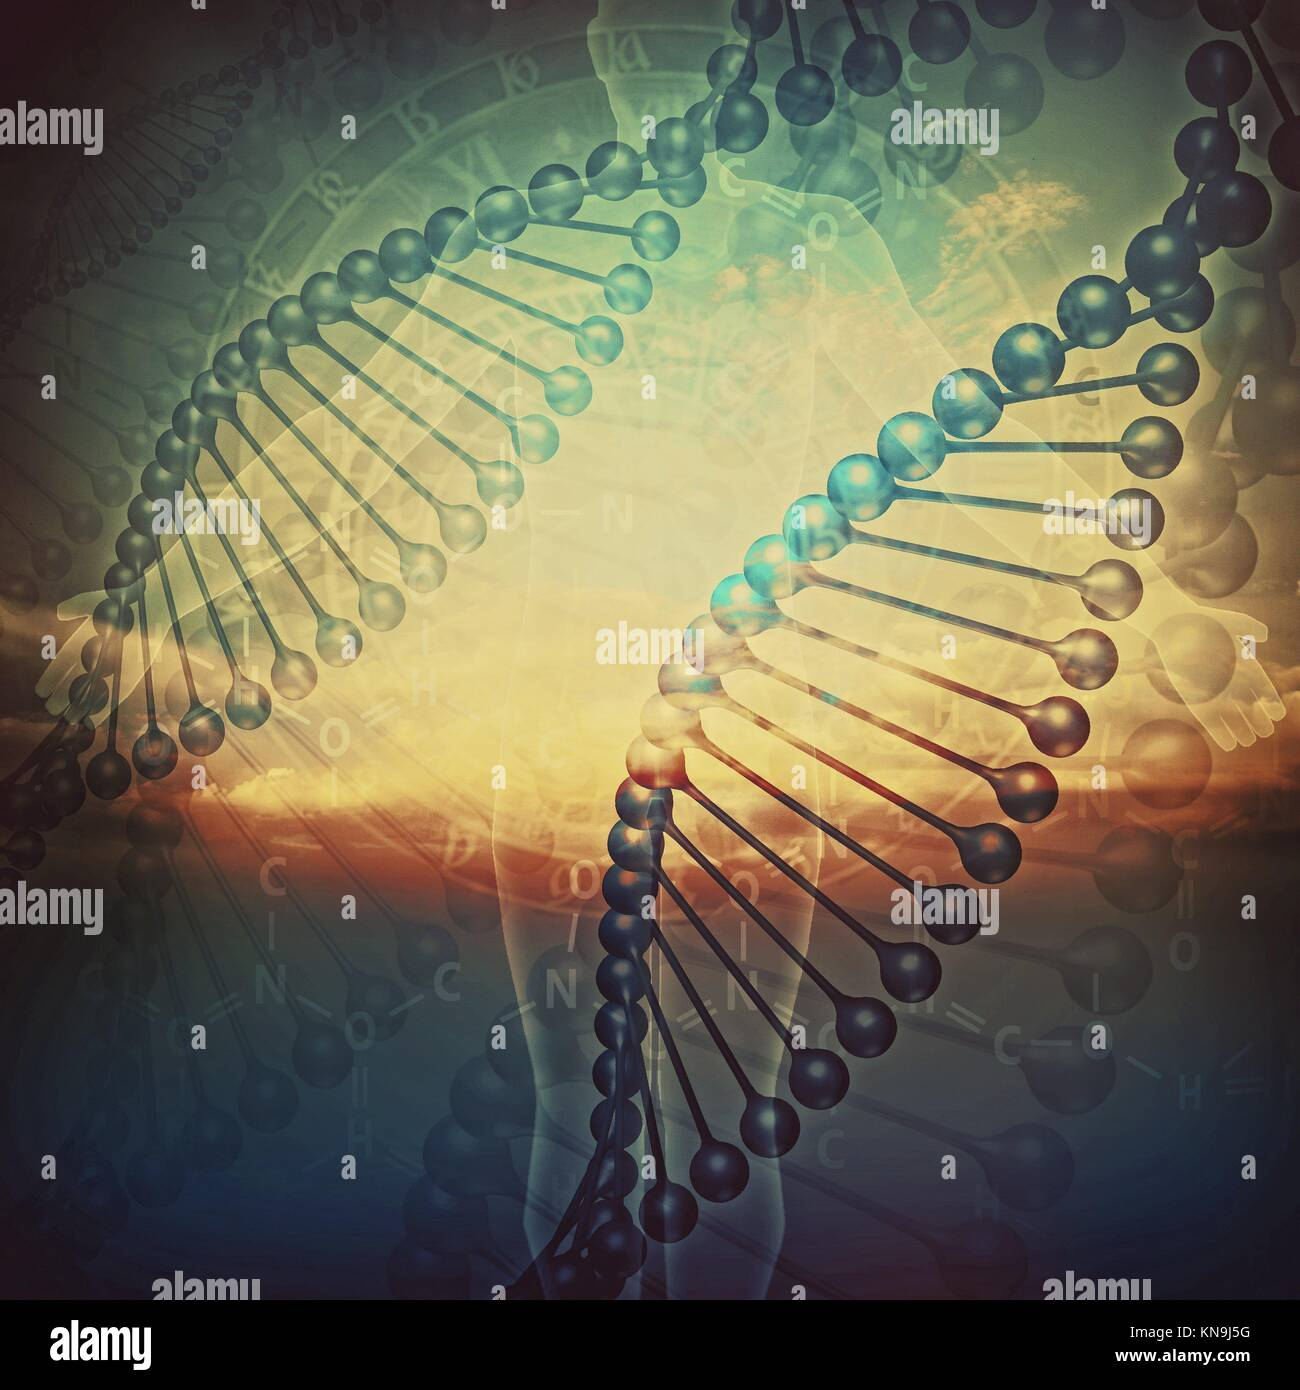 Biology. Abstract education and science backgrounds with human DNA. - Stock Image